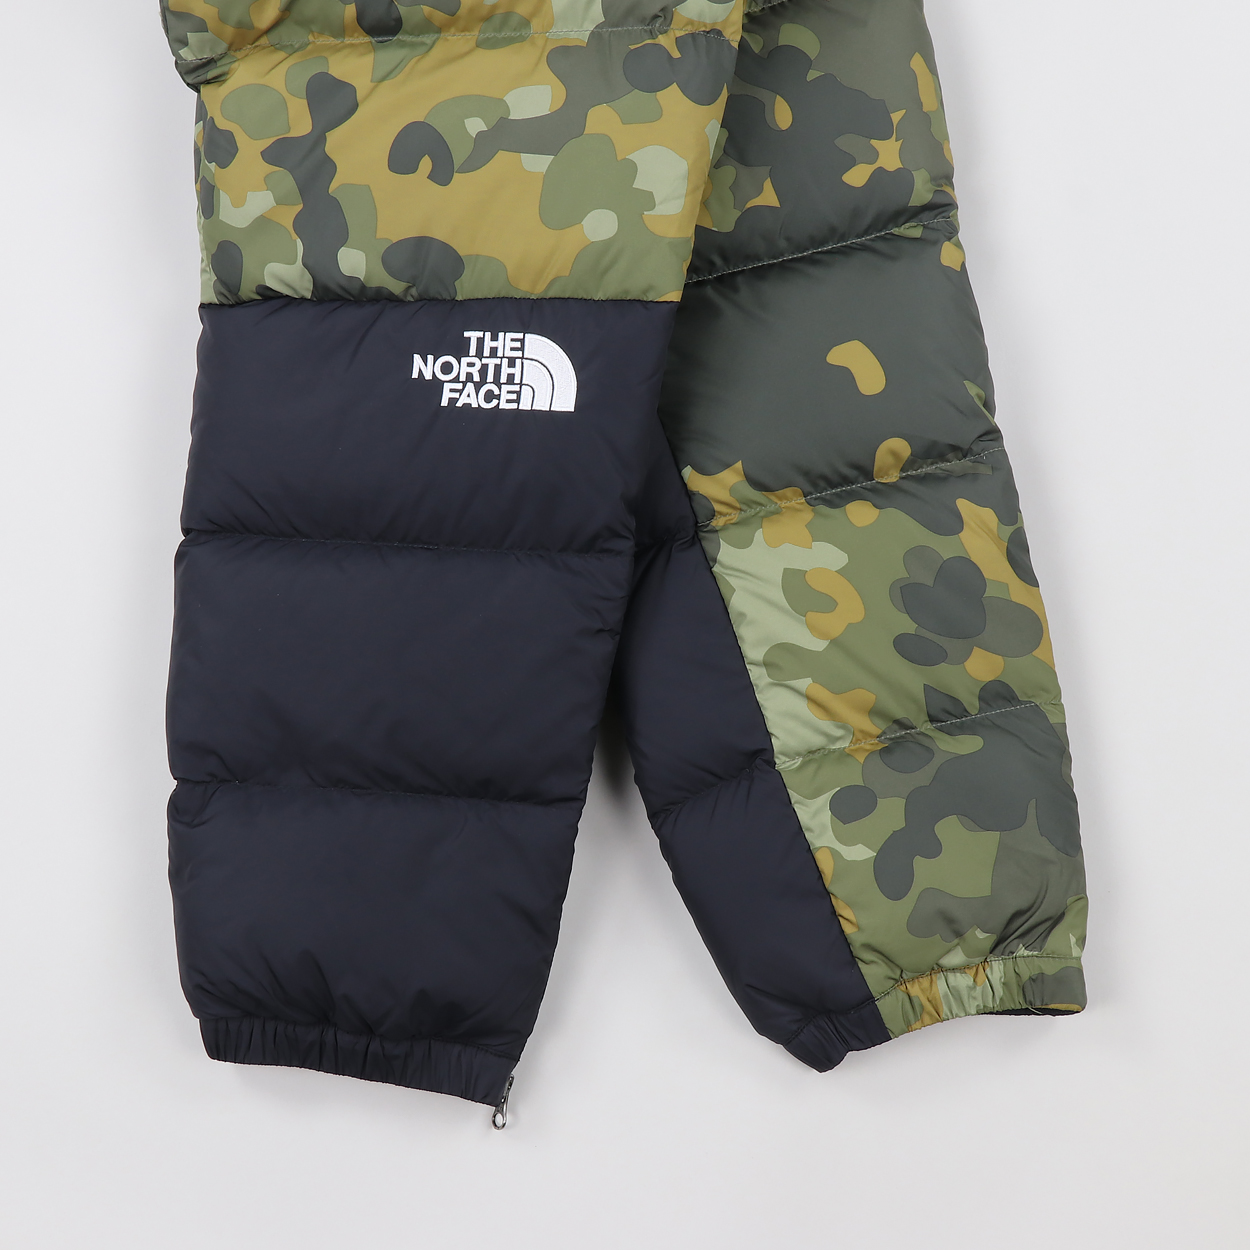 6f82ec9b3da74 A pair of insulated dungarees from The North Face's legendary Nuptse  collection. Made from 100% nylon ripstop with a Durable Water Repellent  finish and ...